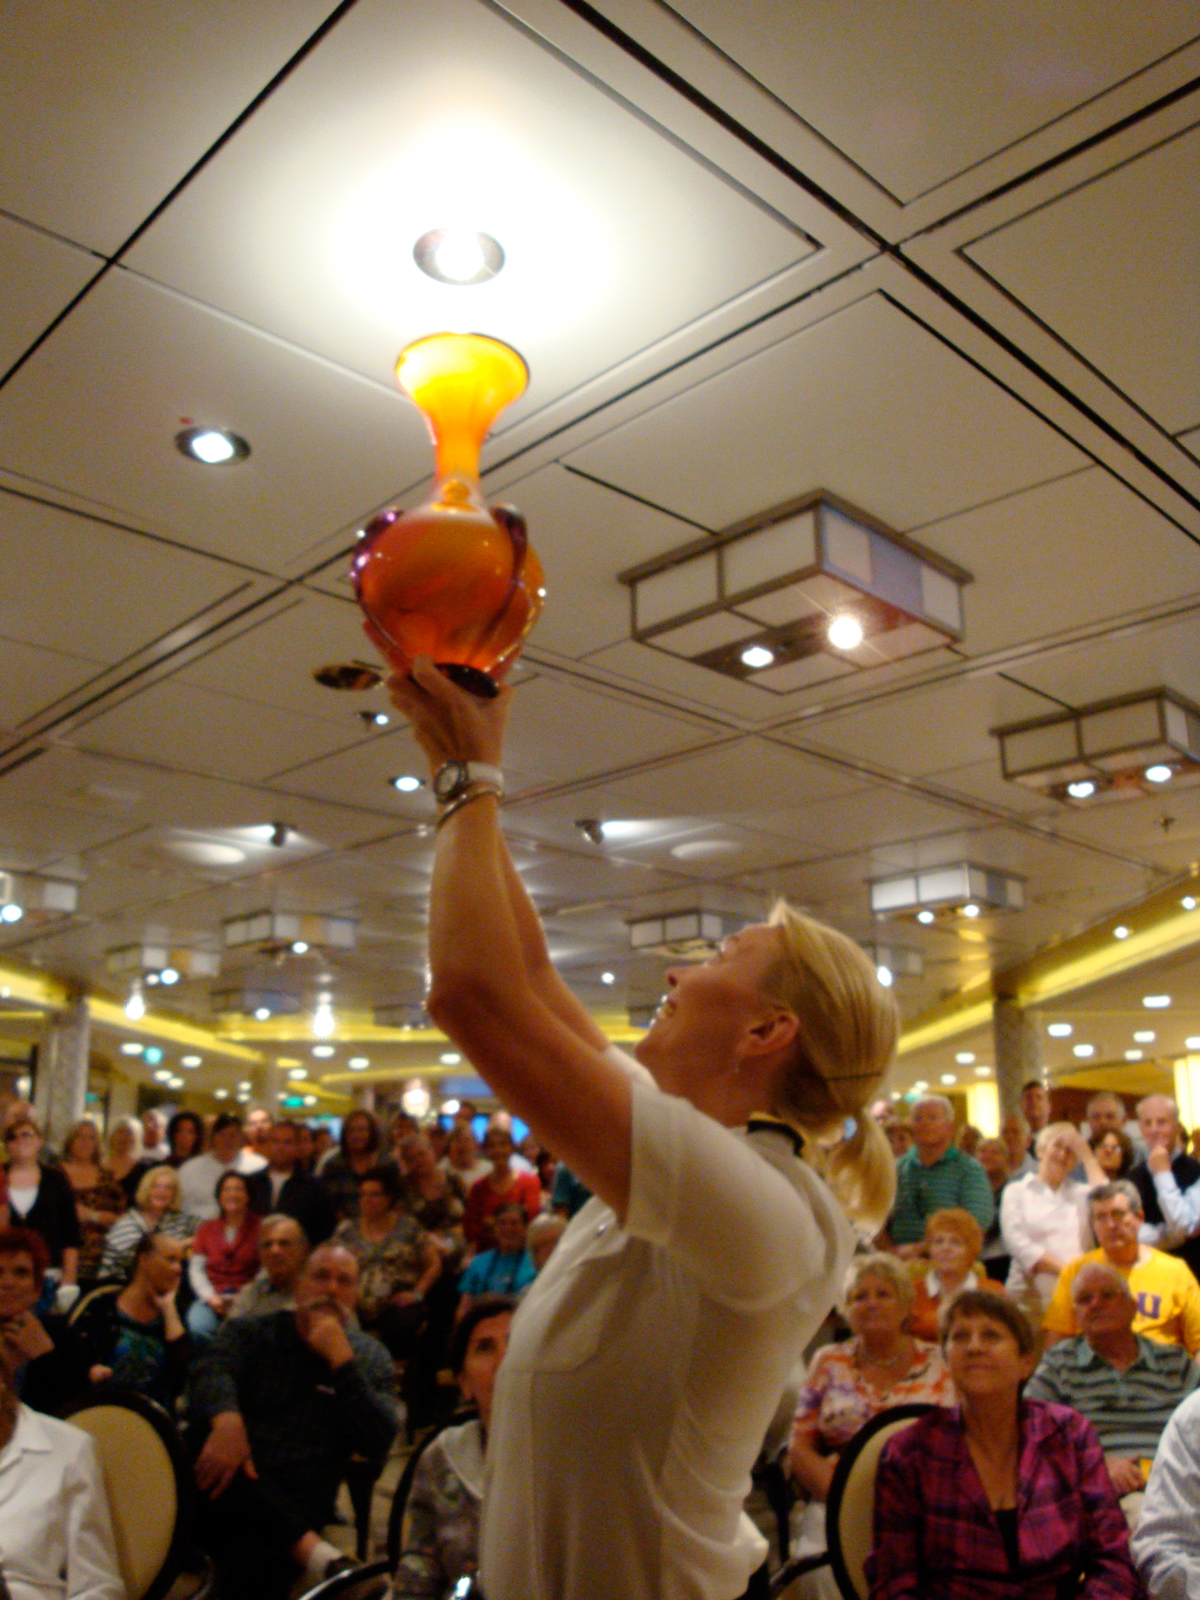 Hot Glass Show at Sea auction